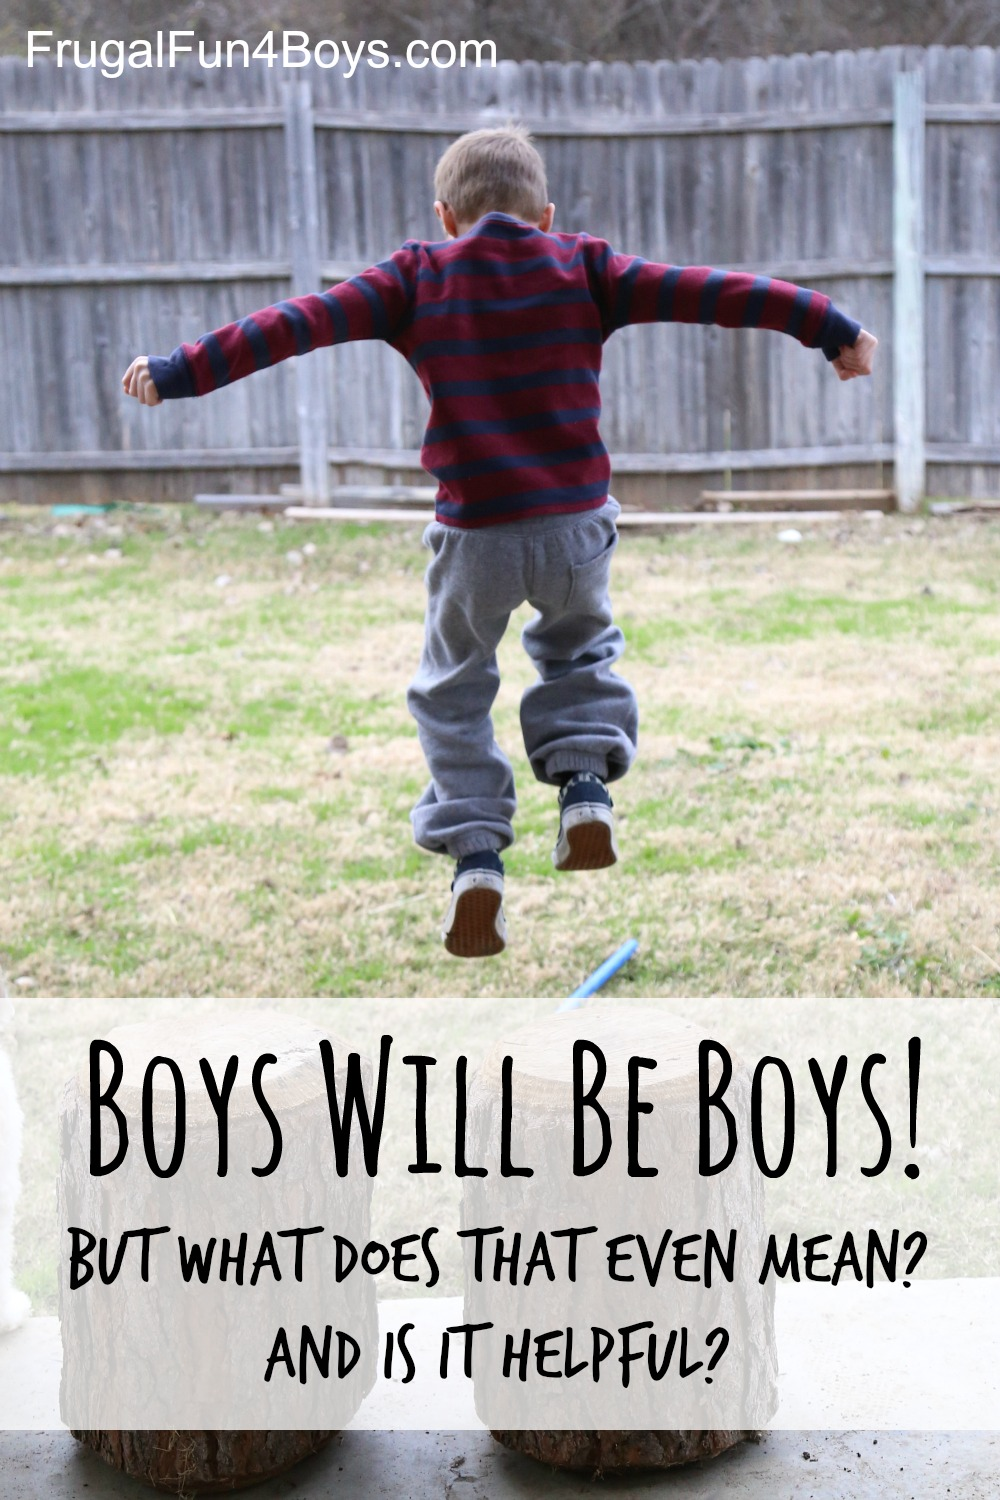 Boys Will Be Boys - And what should we do about that?